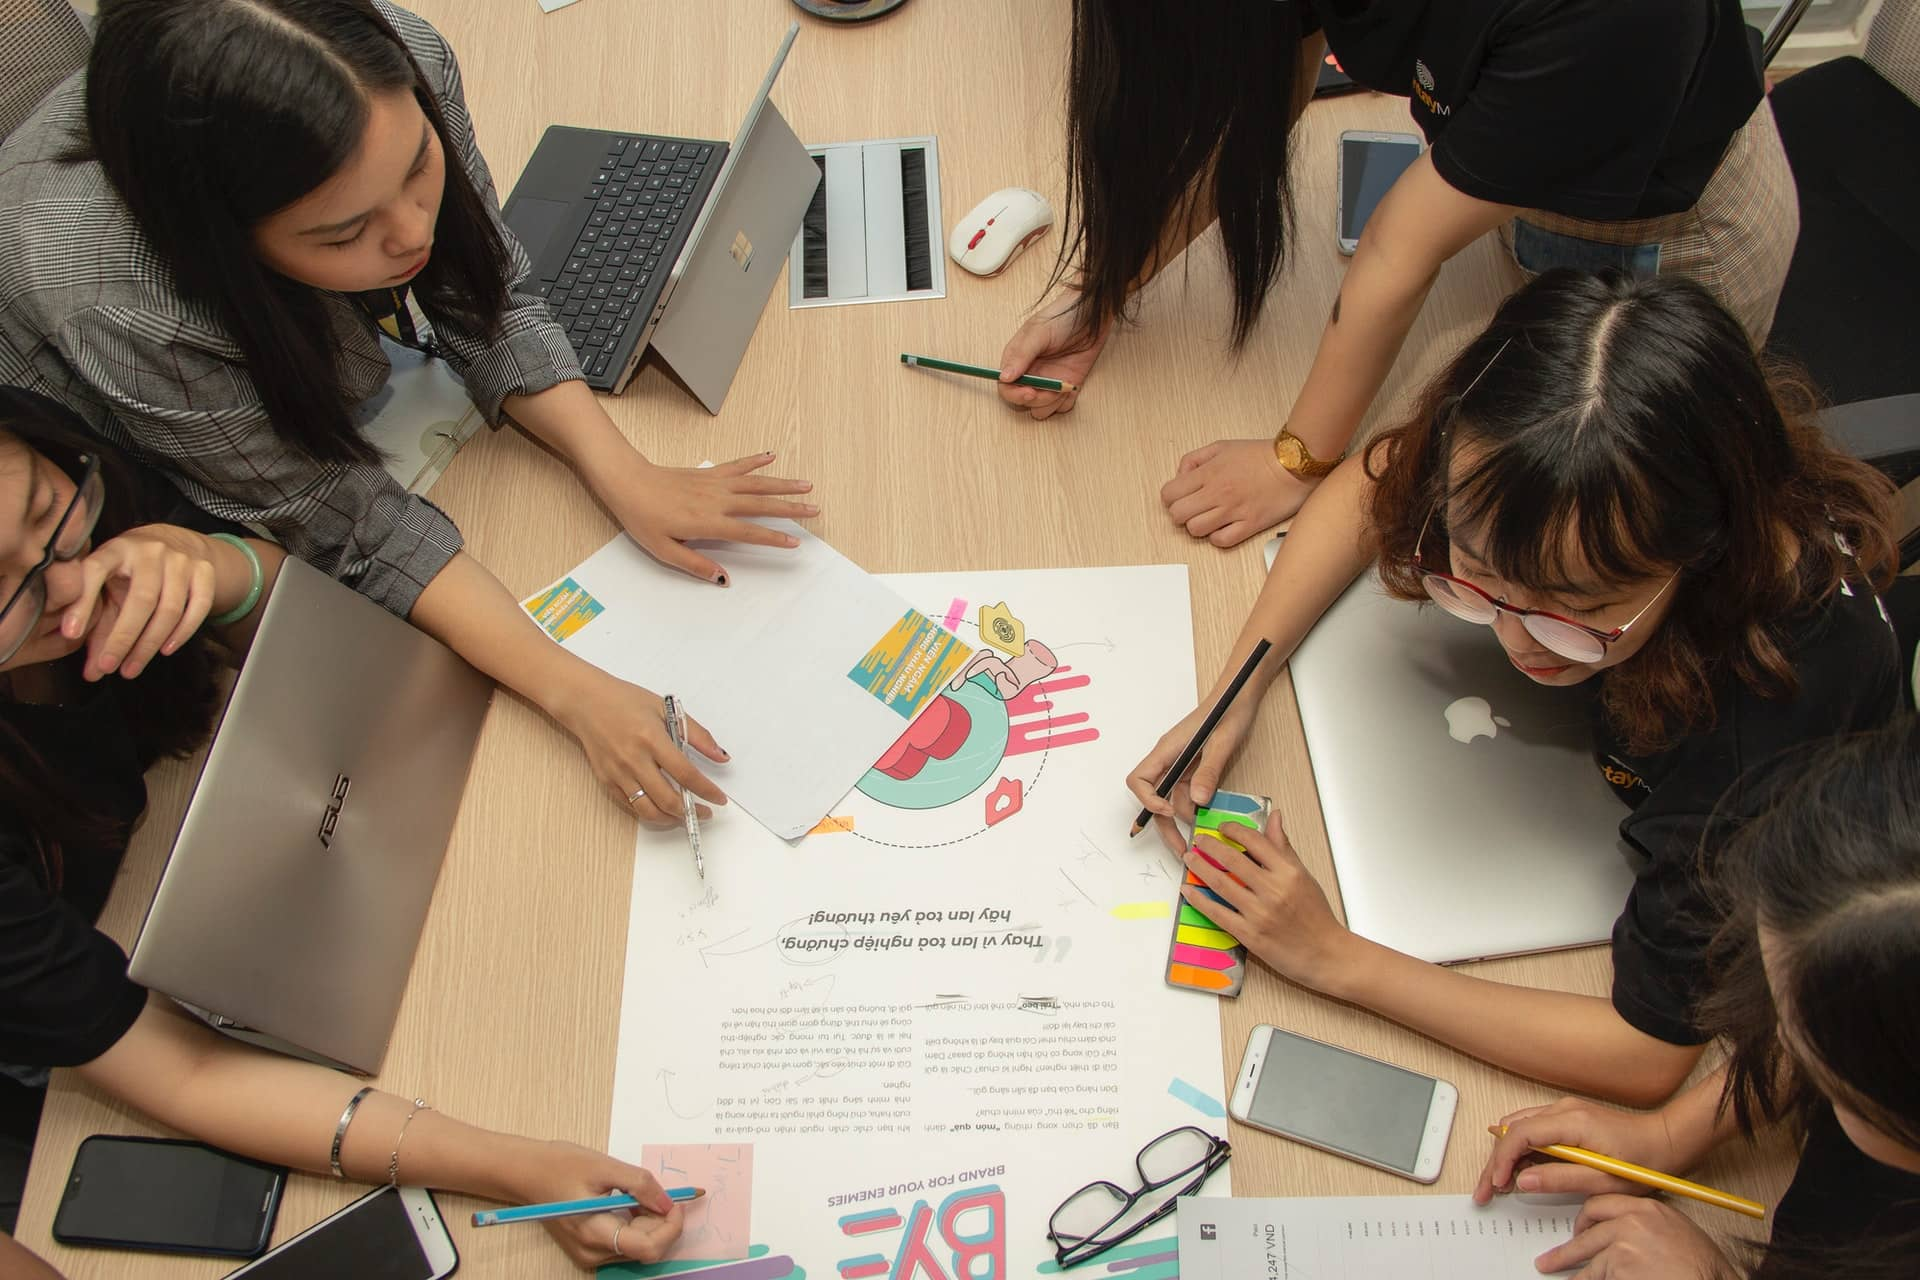 students in creative meeting